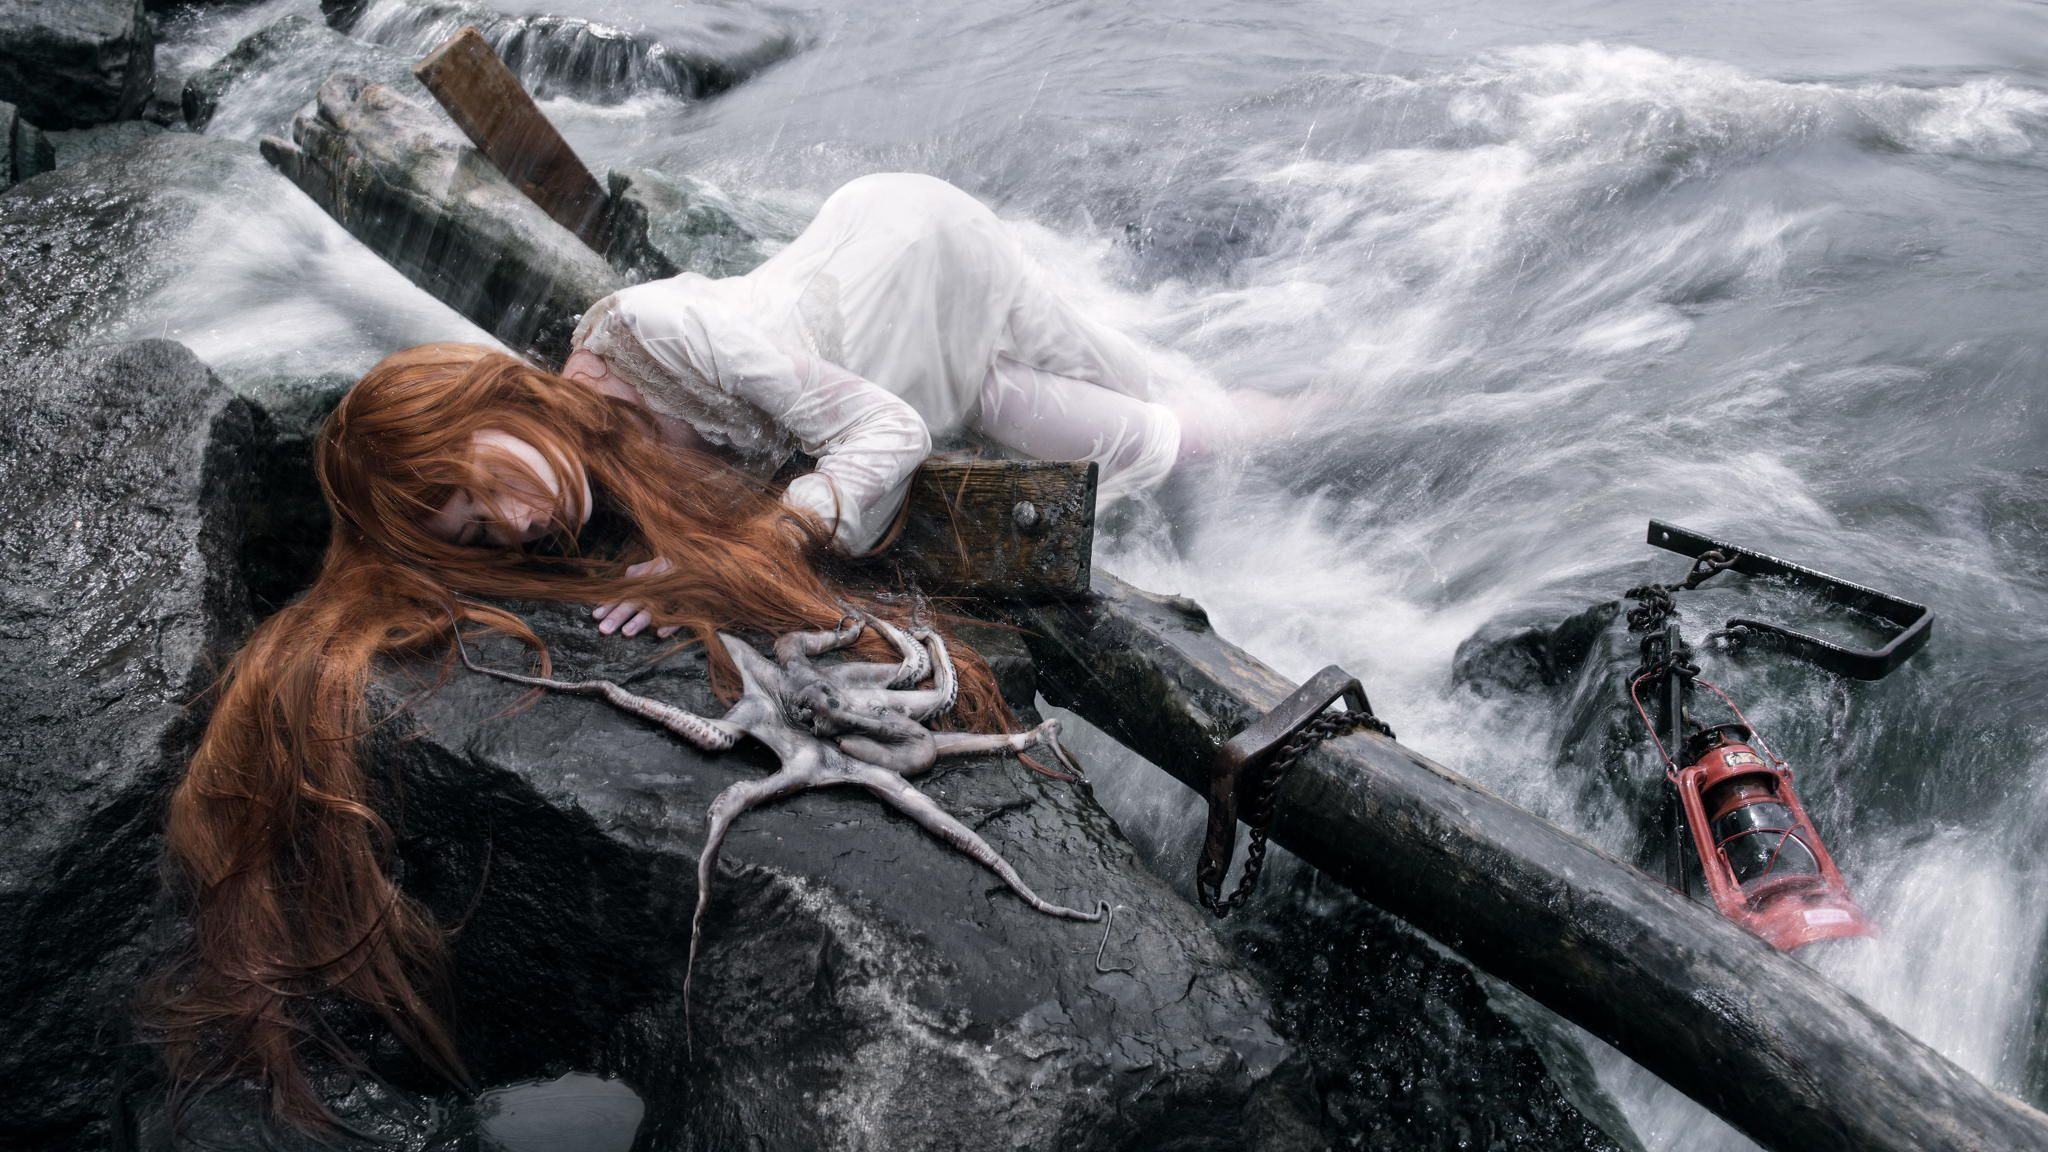 Shipwrecked by Benjamin Von Wong #photography